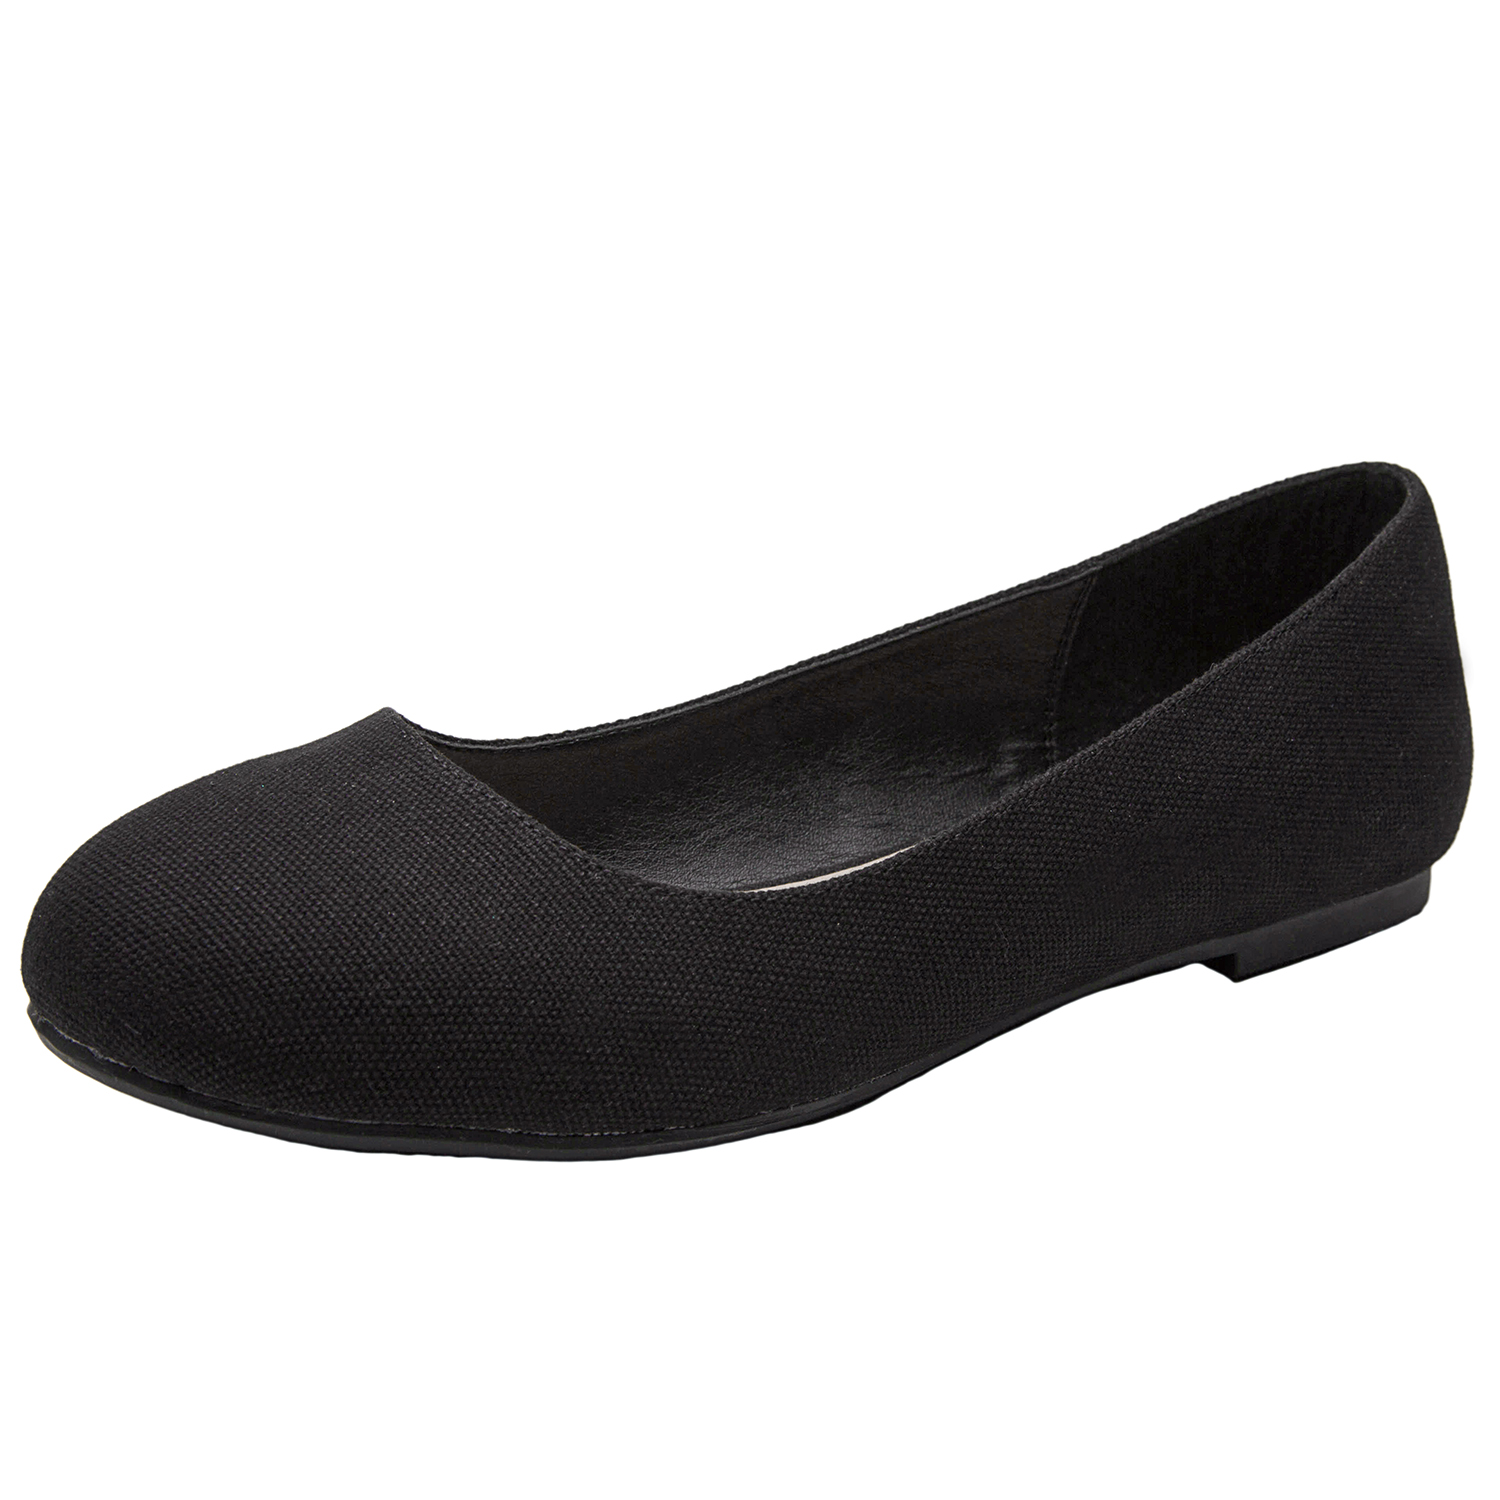 a81558bc94302 US$ 29.99 - Luoika Women's Wide Width Flat Shoes - Comfortable Slip On  Round Toe Ballet Flats - www.luoika-us.com